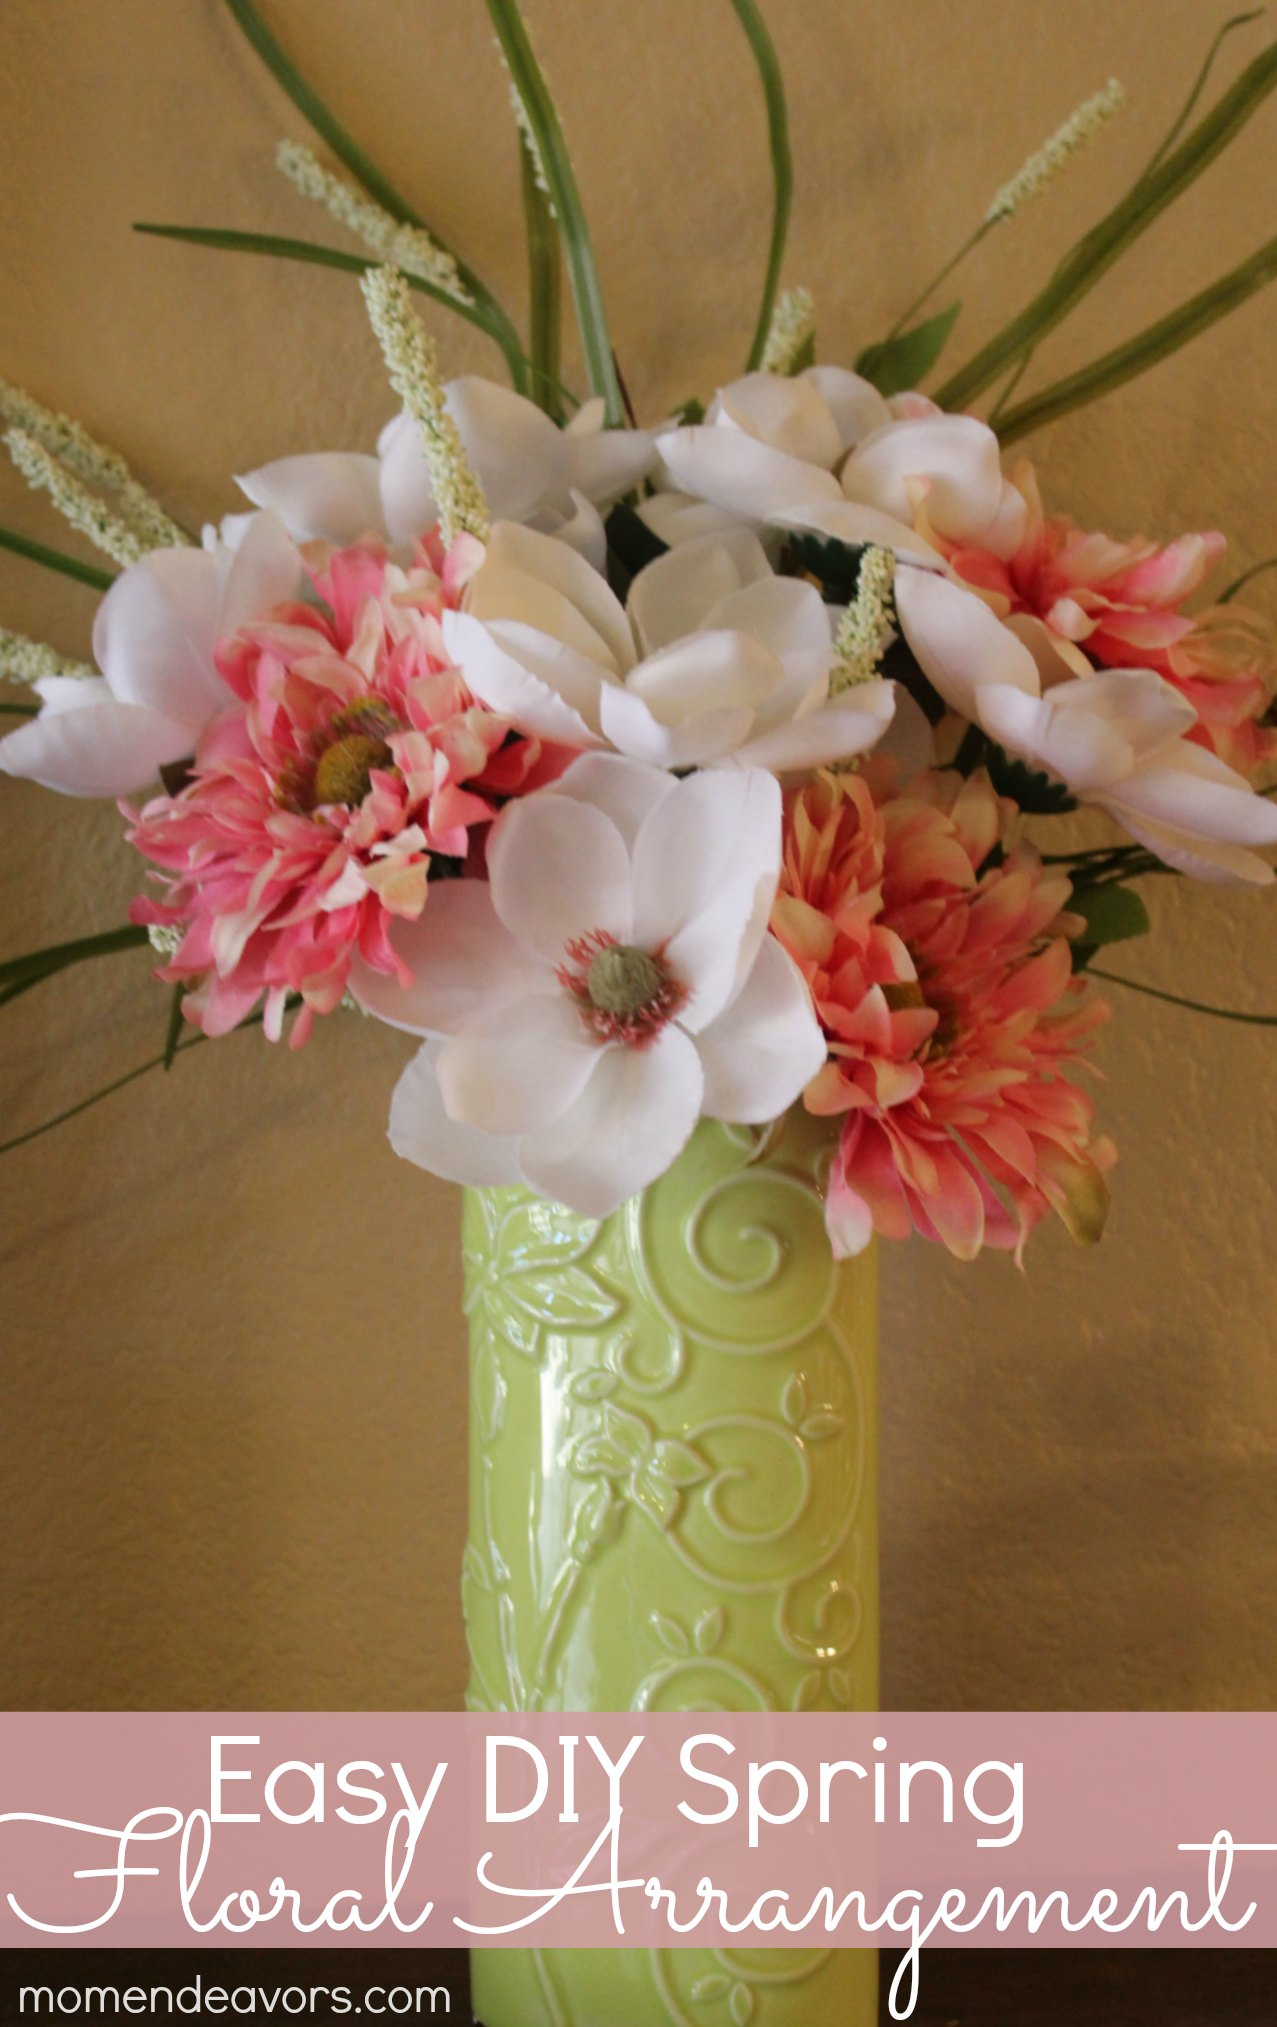 Easy DIY Spring Floral Arrangement